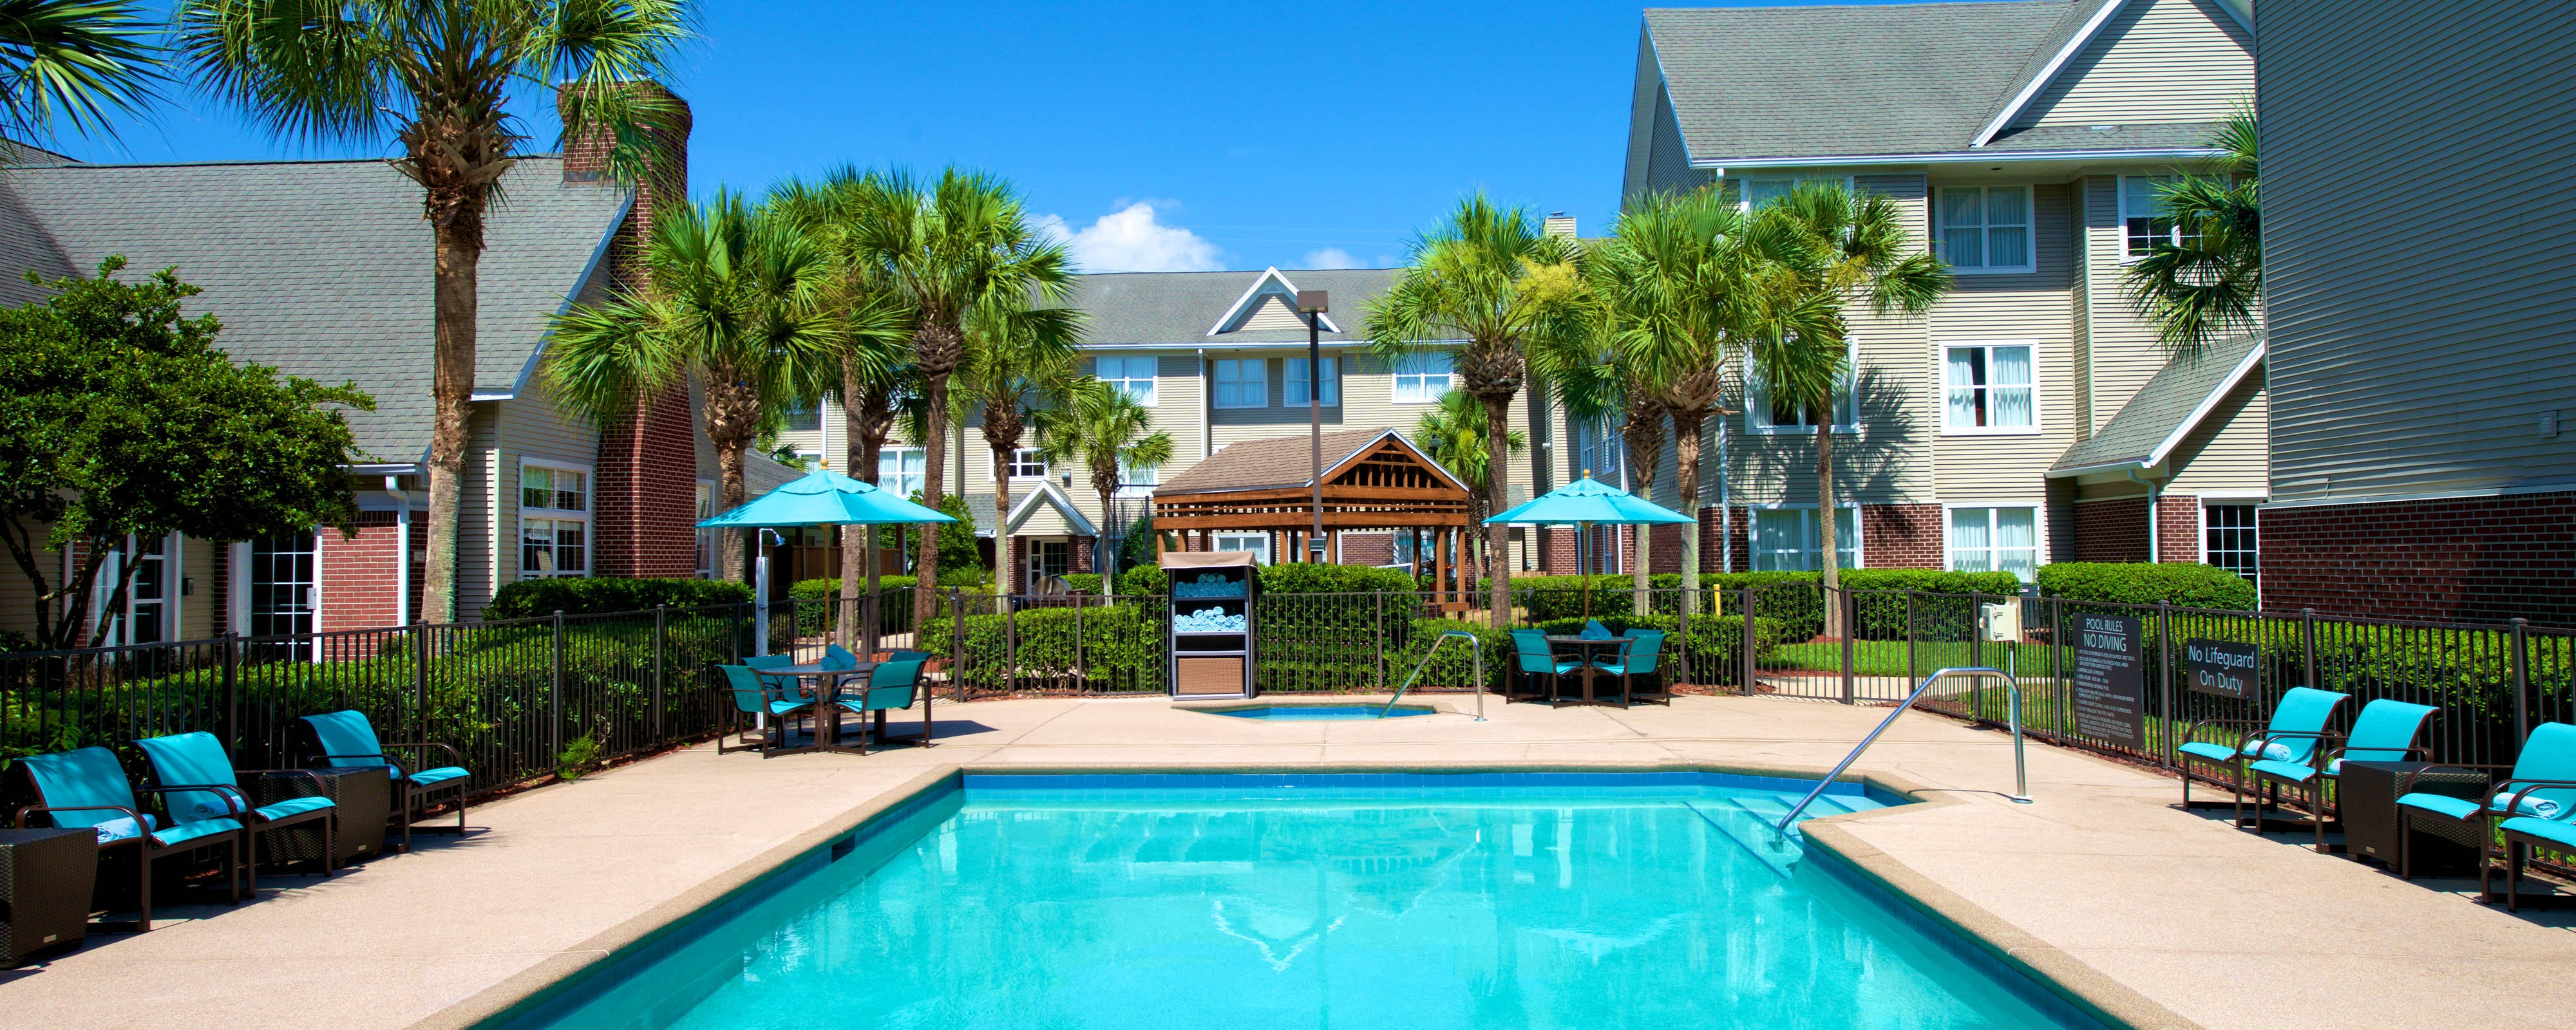 Jacksonville Hotel Outdoor Pool